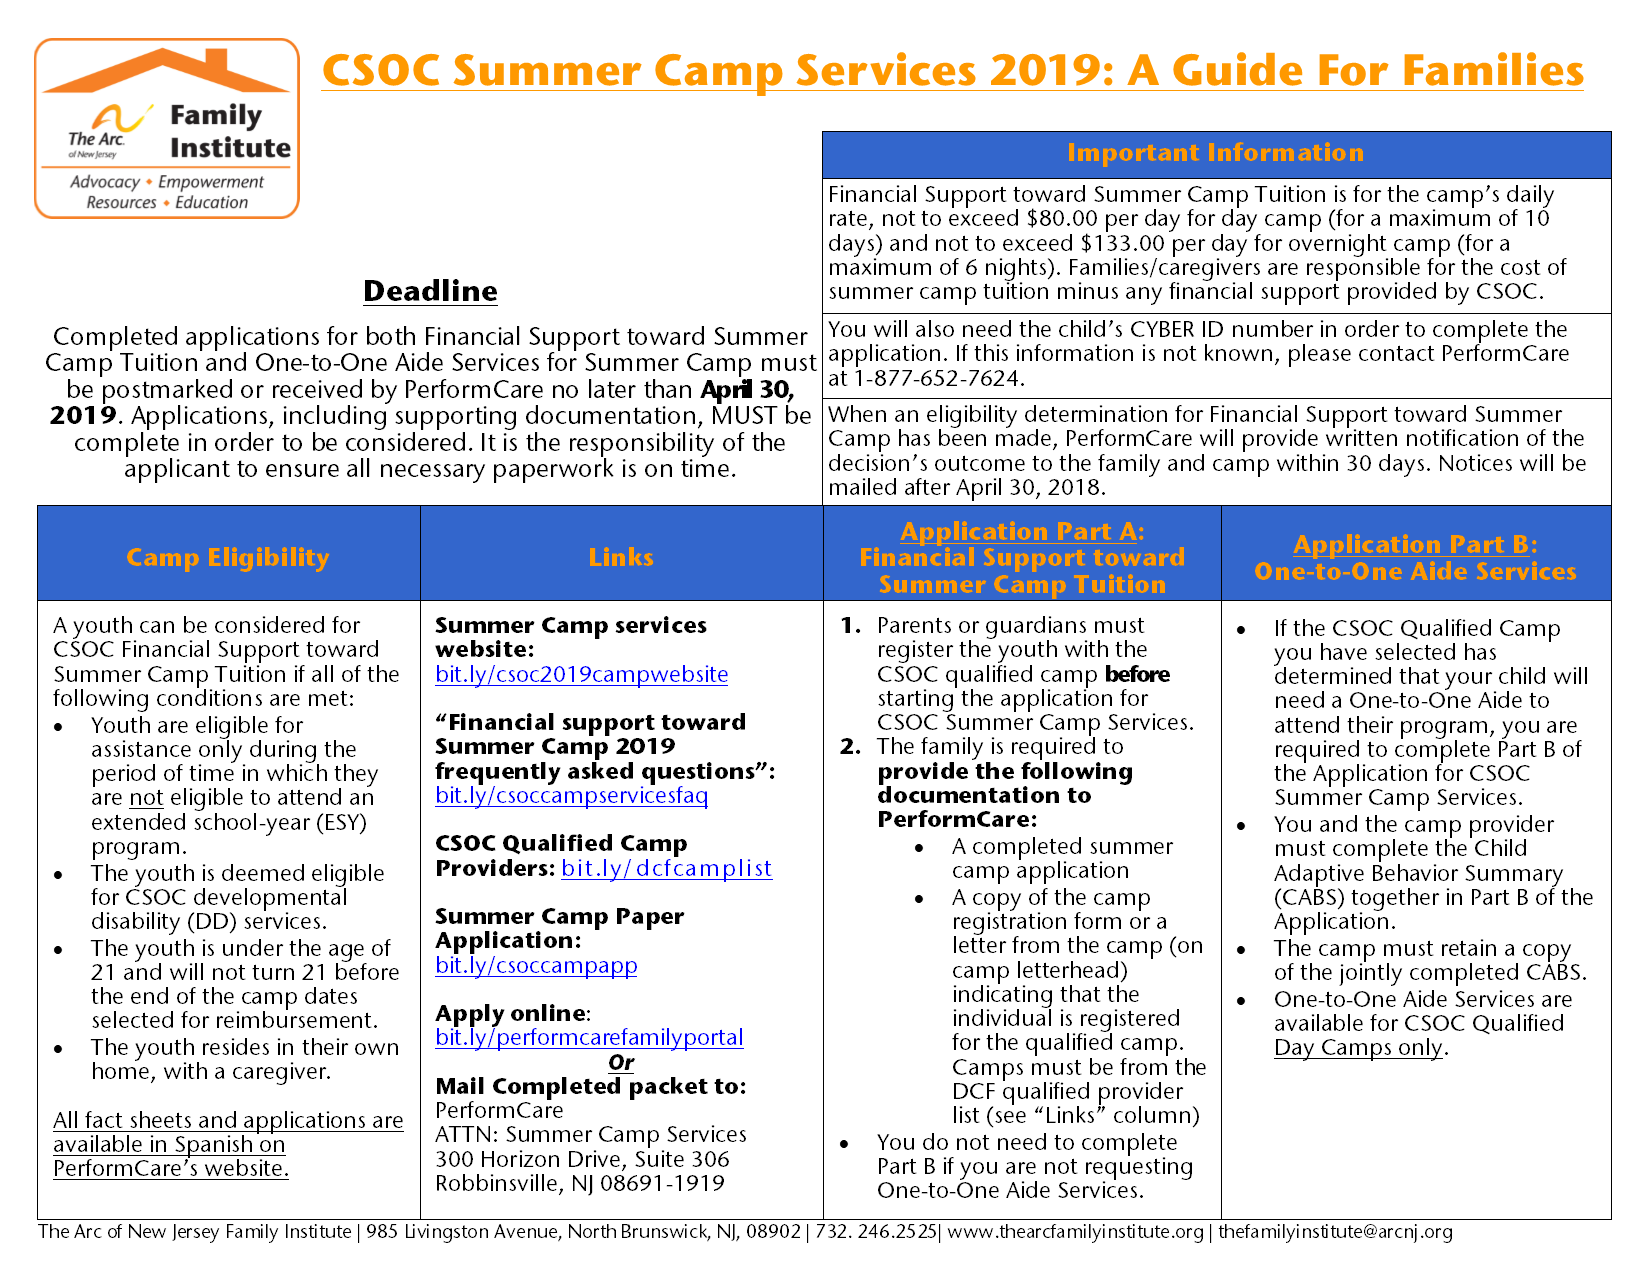 CSOC Summer Camp Services 2019: A Guide For Families